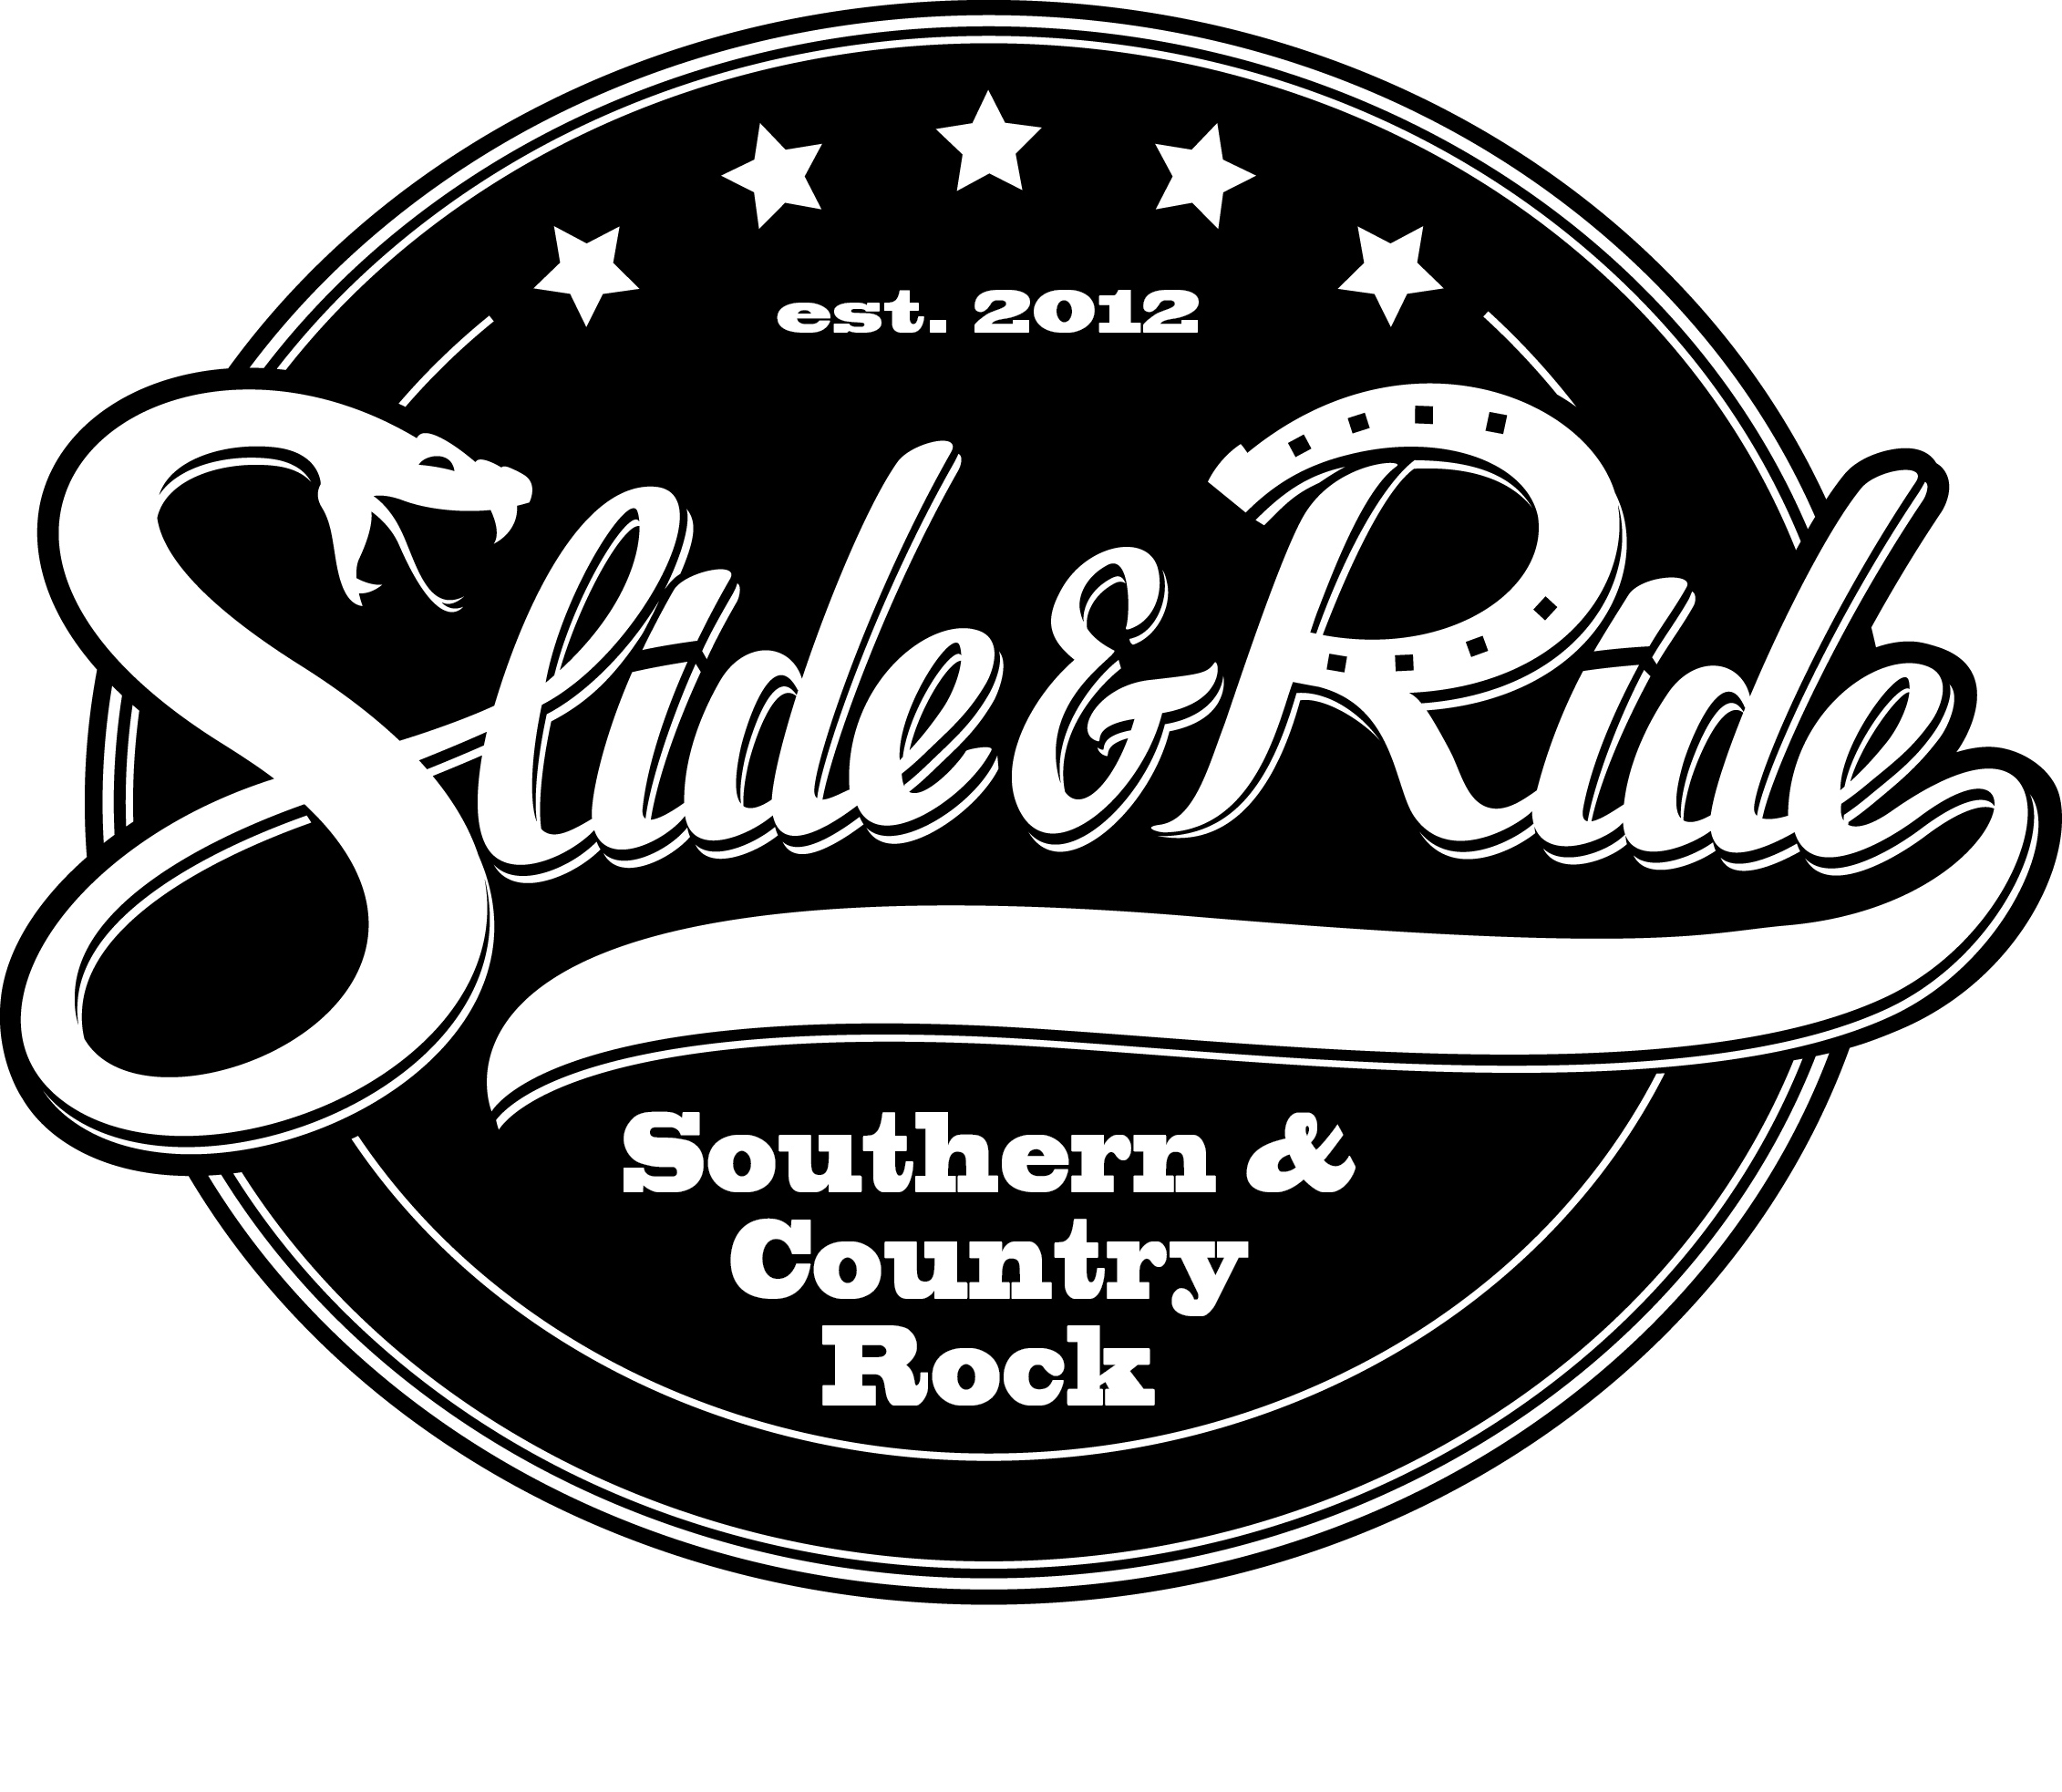 slide_and_ride_schirftzug_shirt